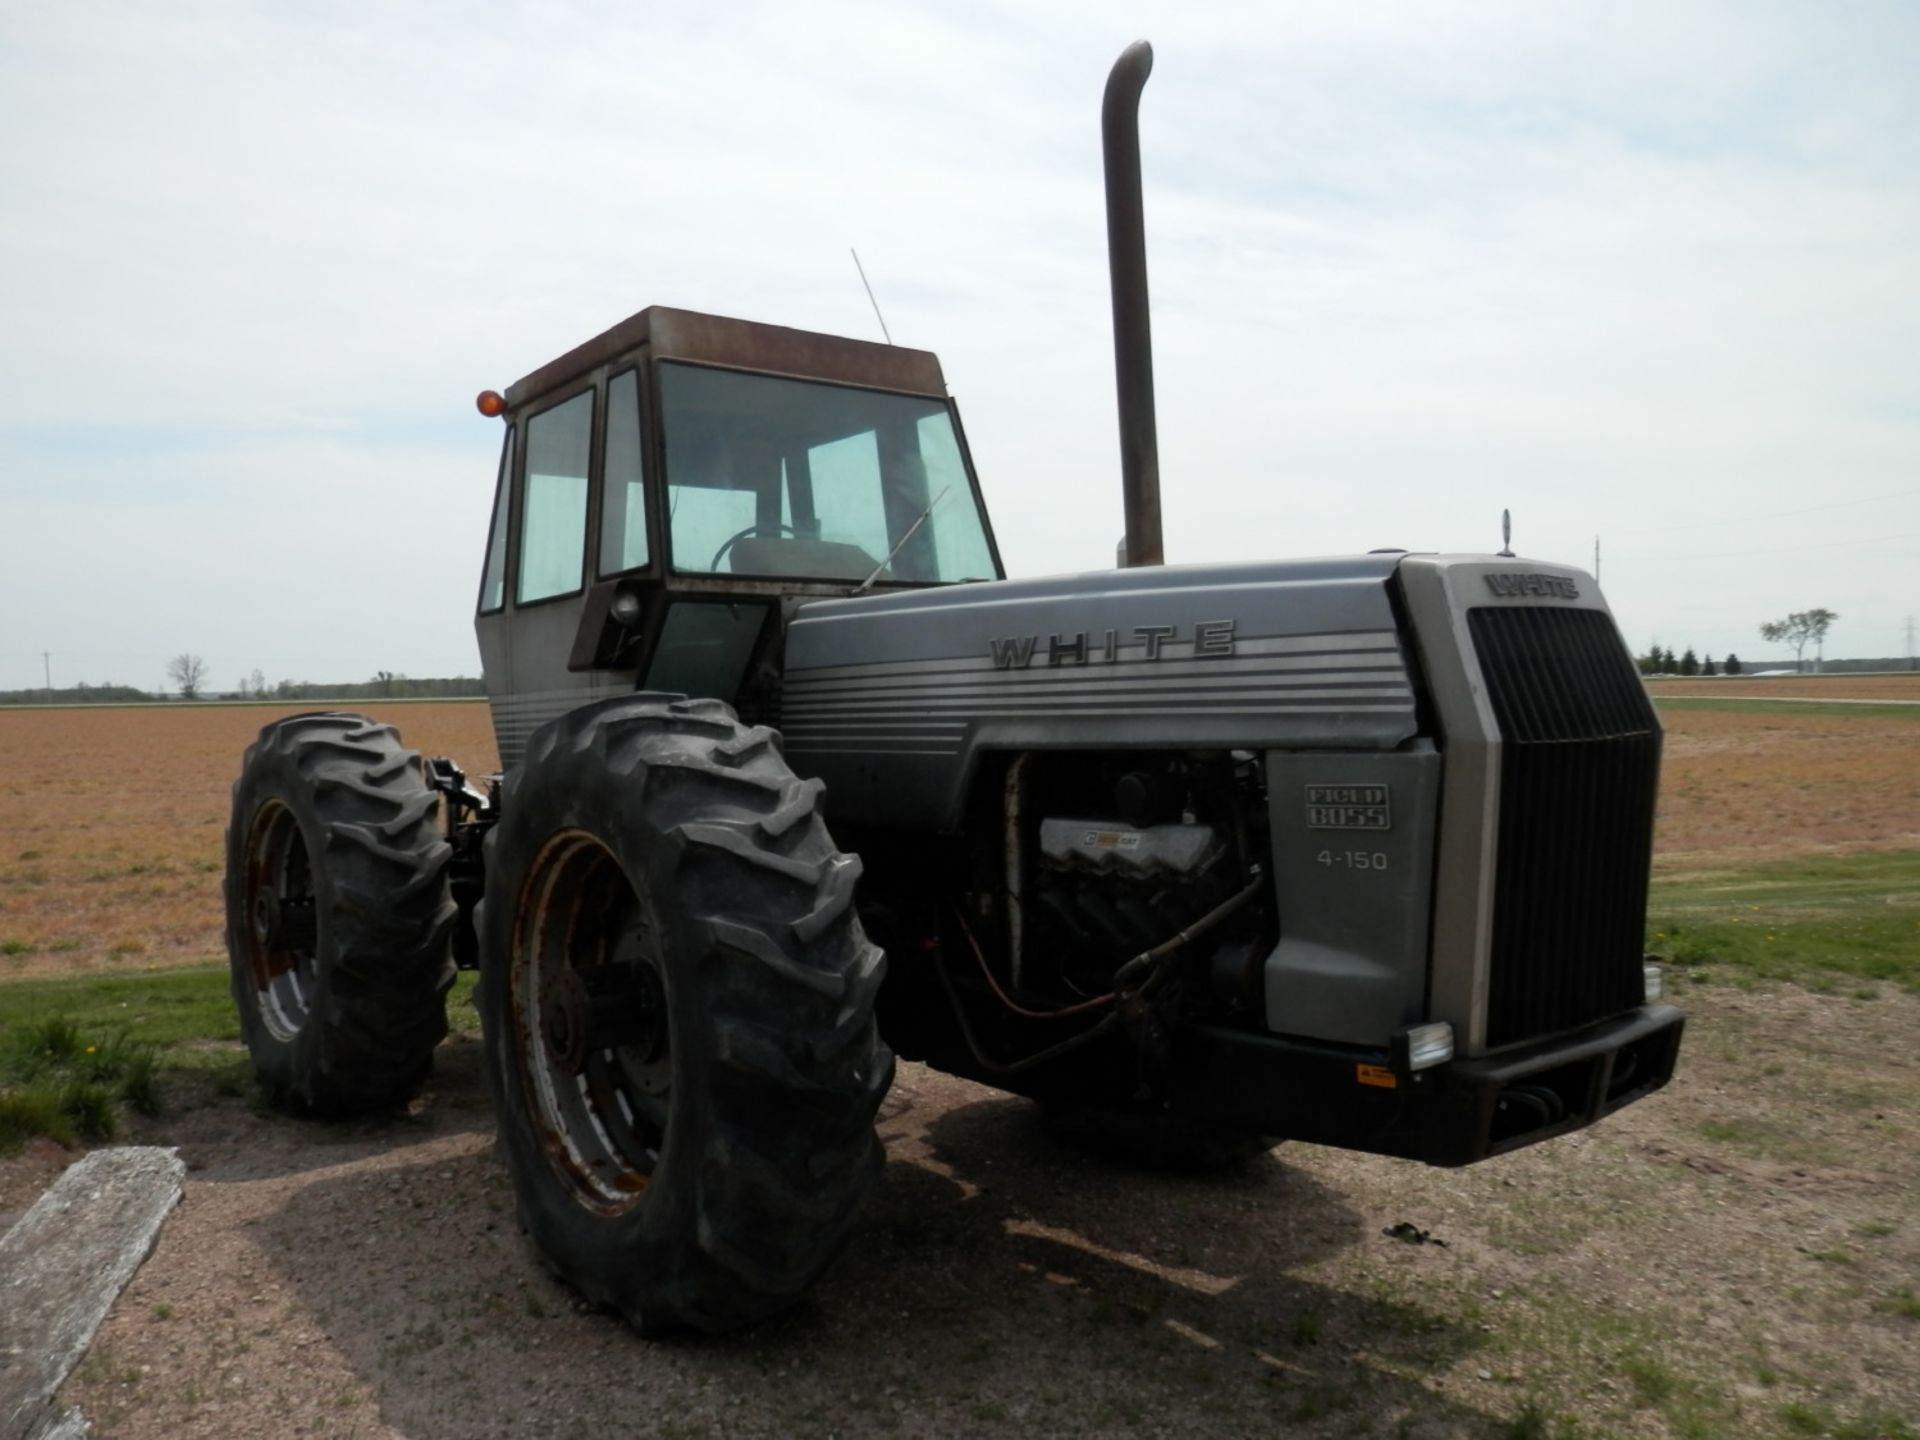 WHITE FIELD BOSS 4-150 4x4 TRACTOR - Image 2 of 8